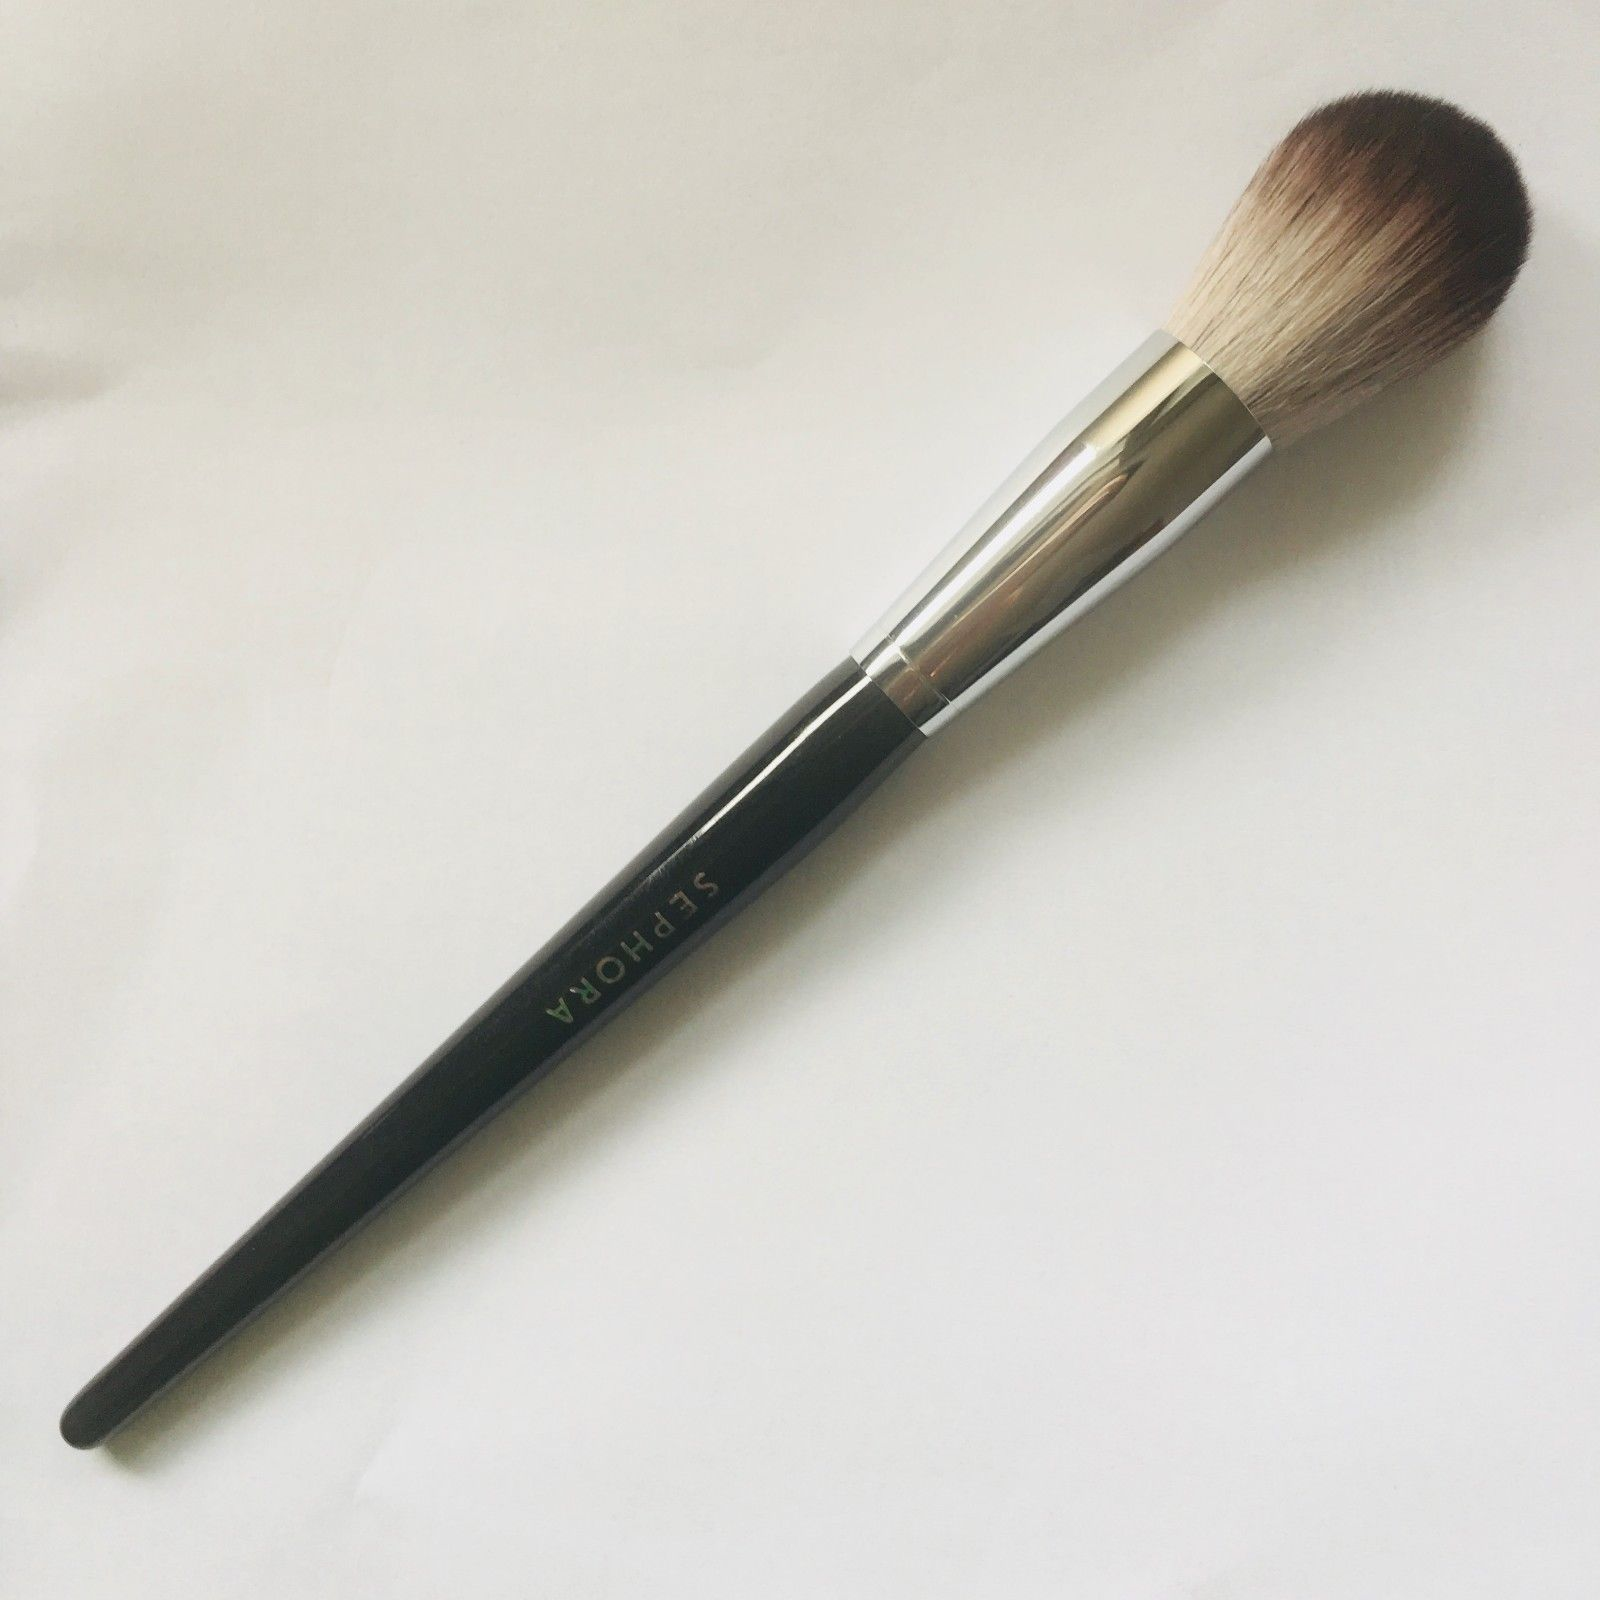 Pro Featherweight Complexion Brush #90 by Sephora Collection #5